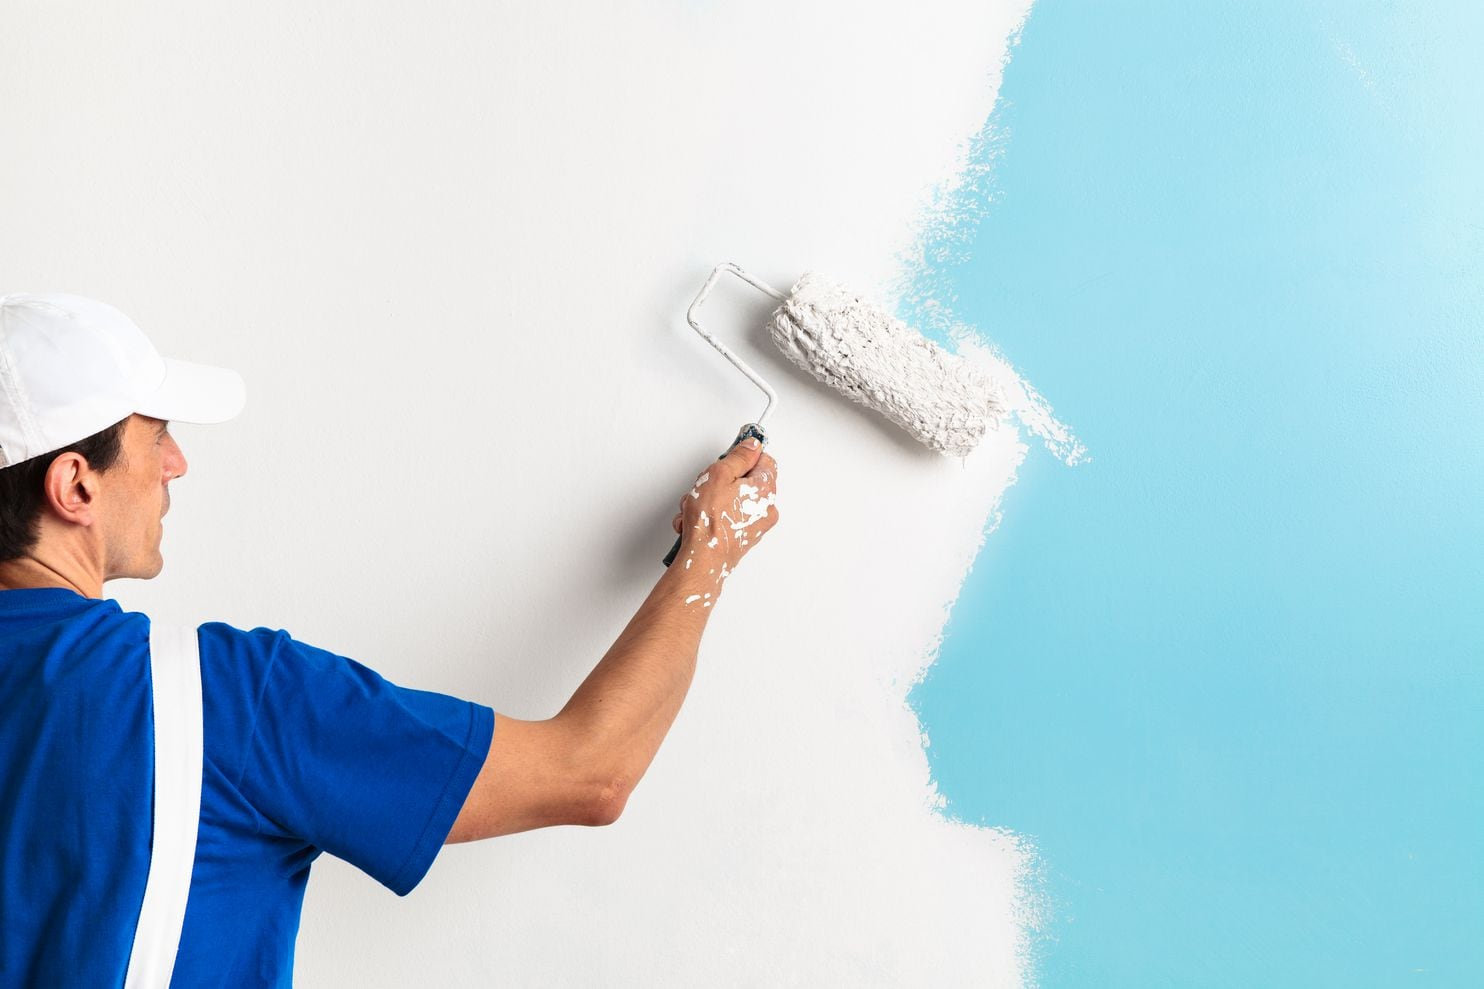 Residencial & Commercial Paint services